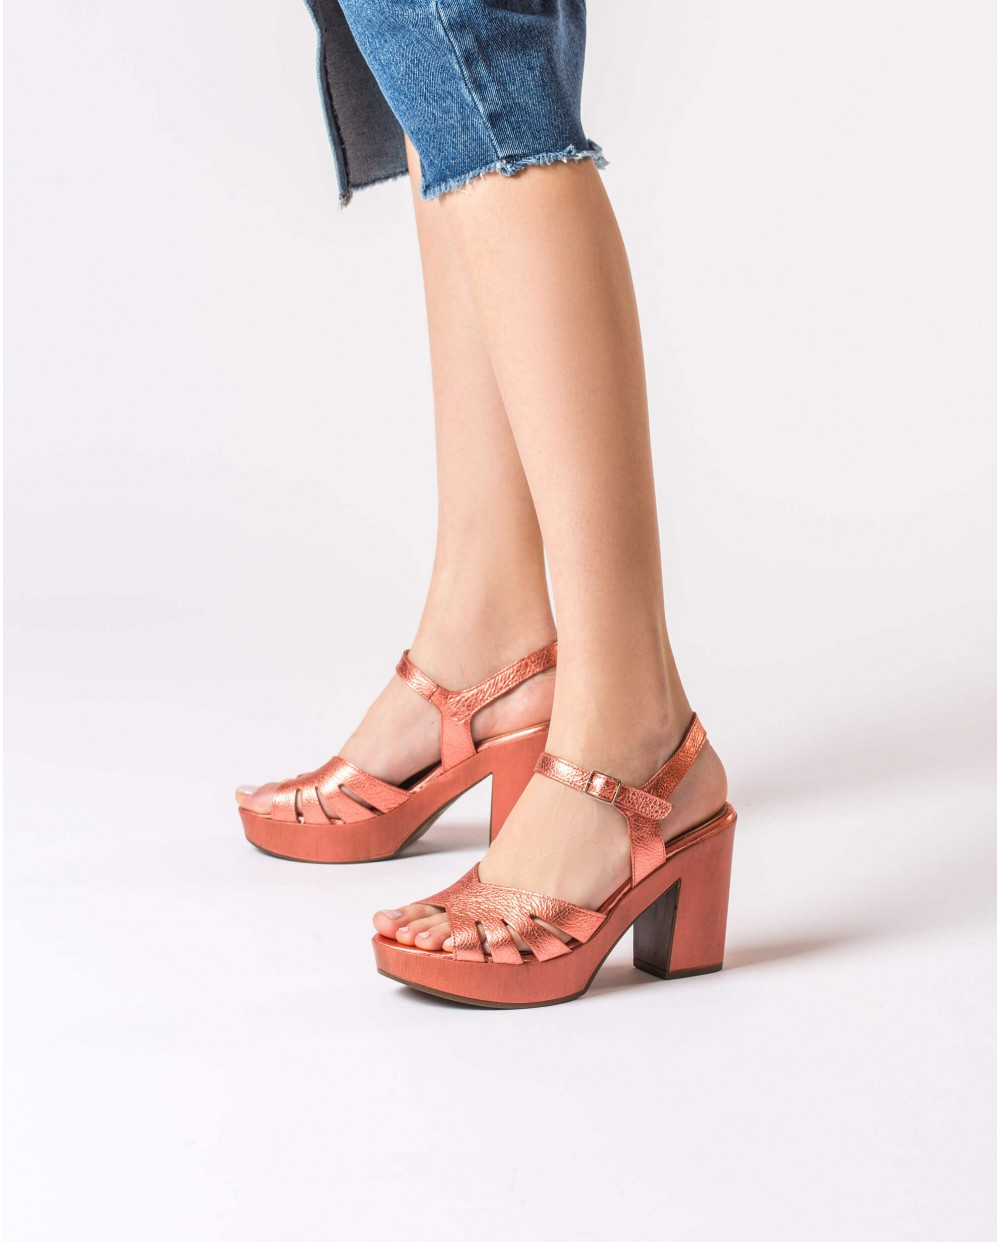 Wonders-Sandals-Leather sandal with side cut out detail